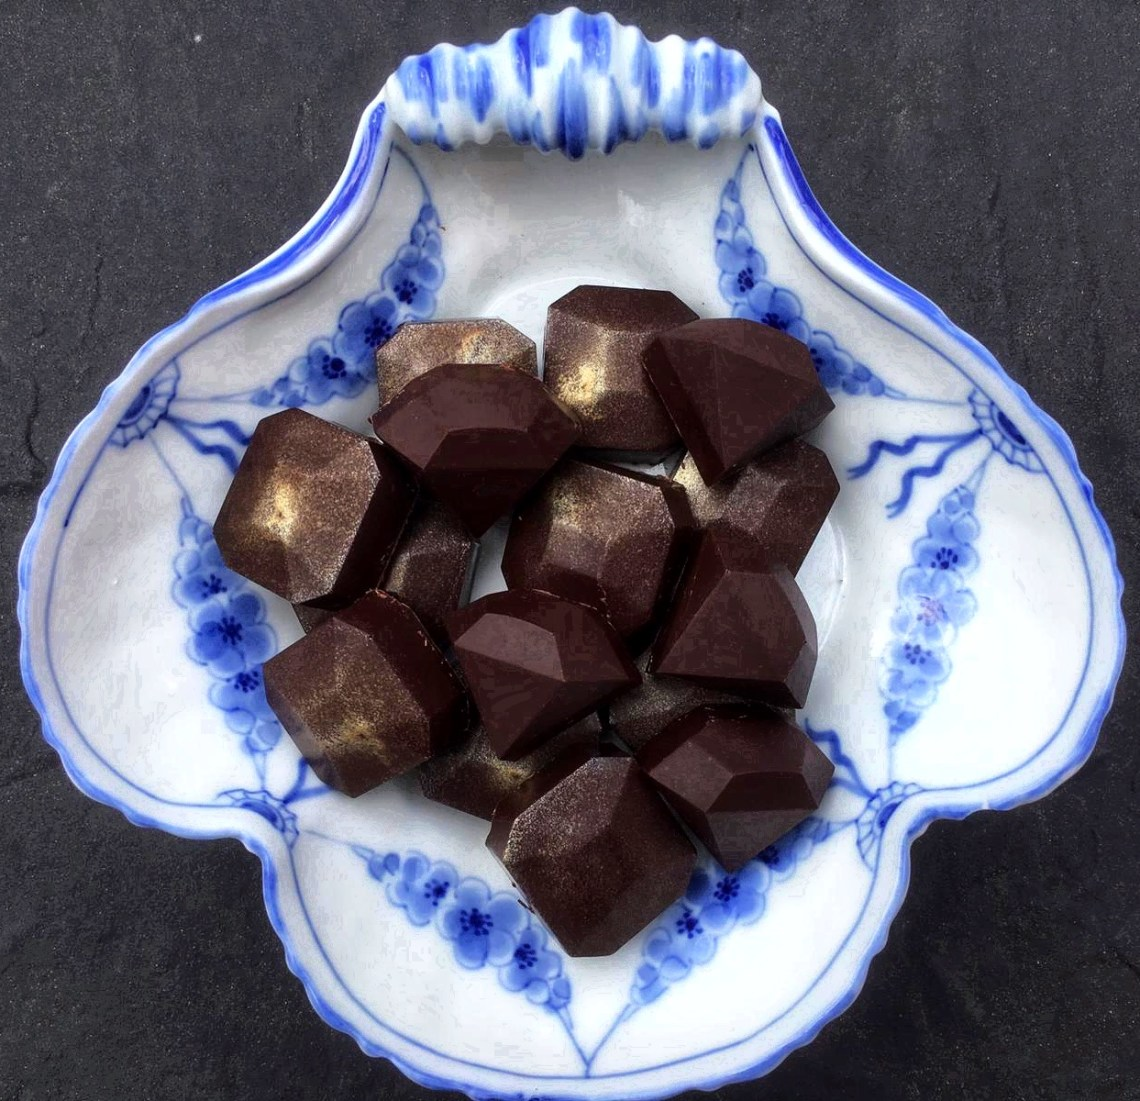 Cognac ganache chocolates - homemade chocolates with cognac ganache filling made in chocolate molds.